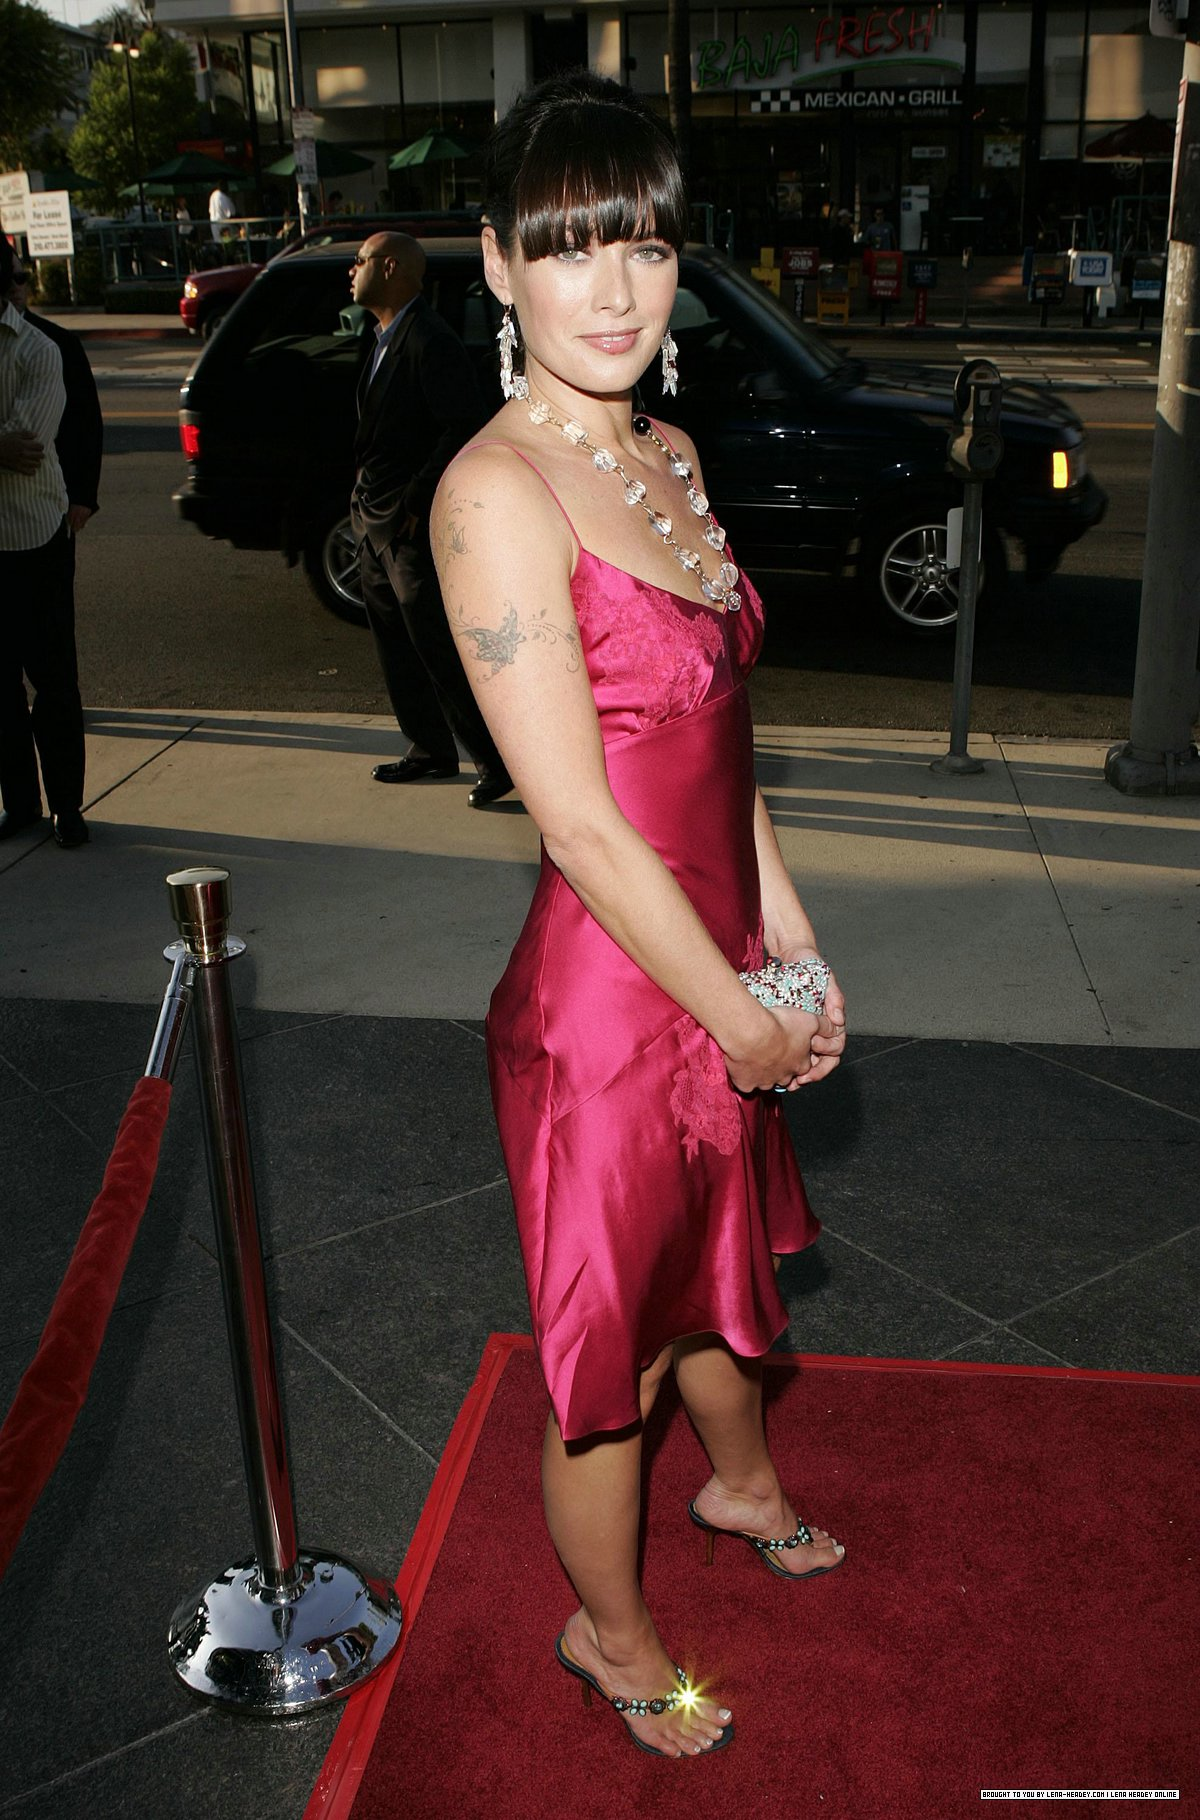 Lena Headey - Wikipedia